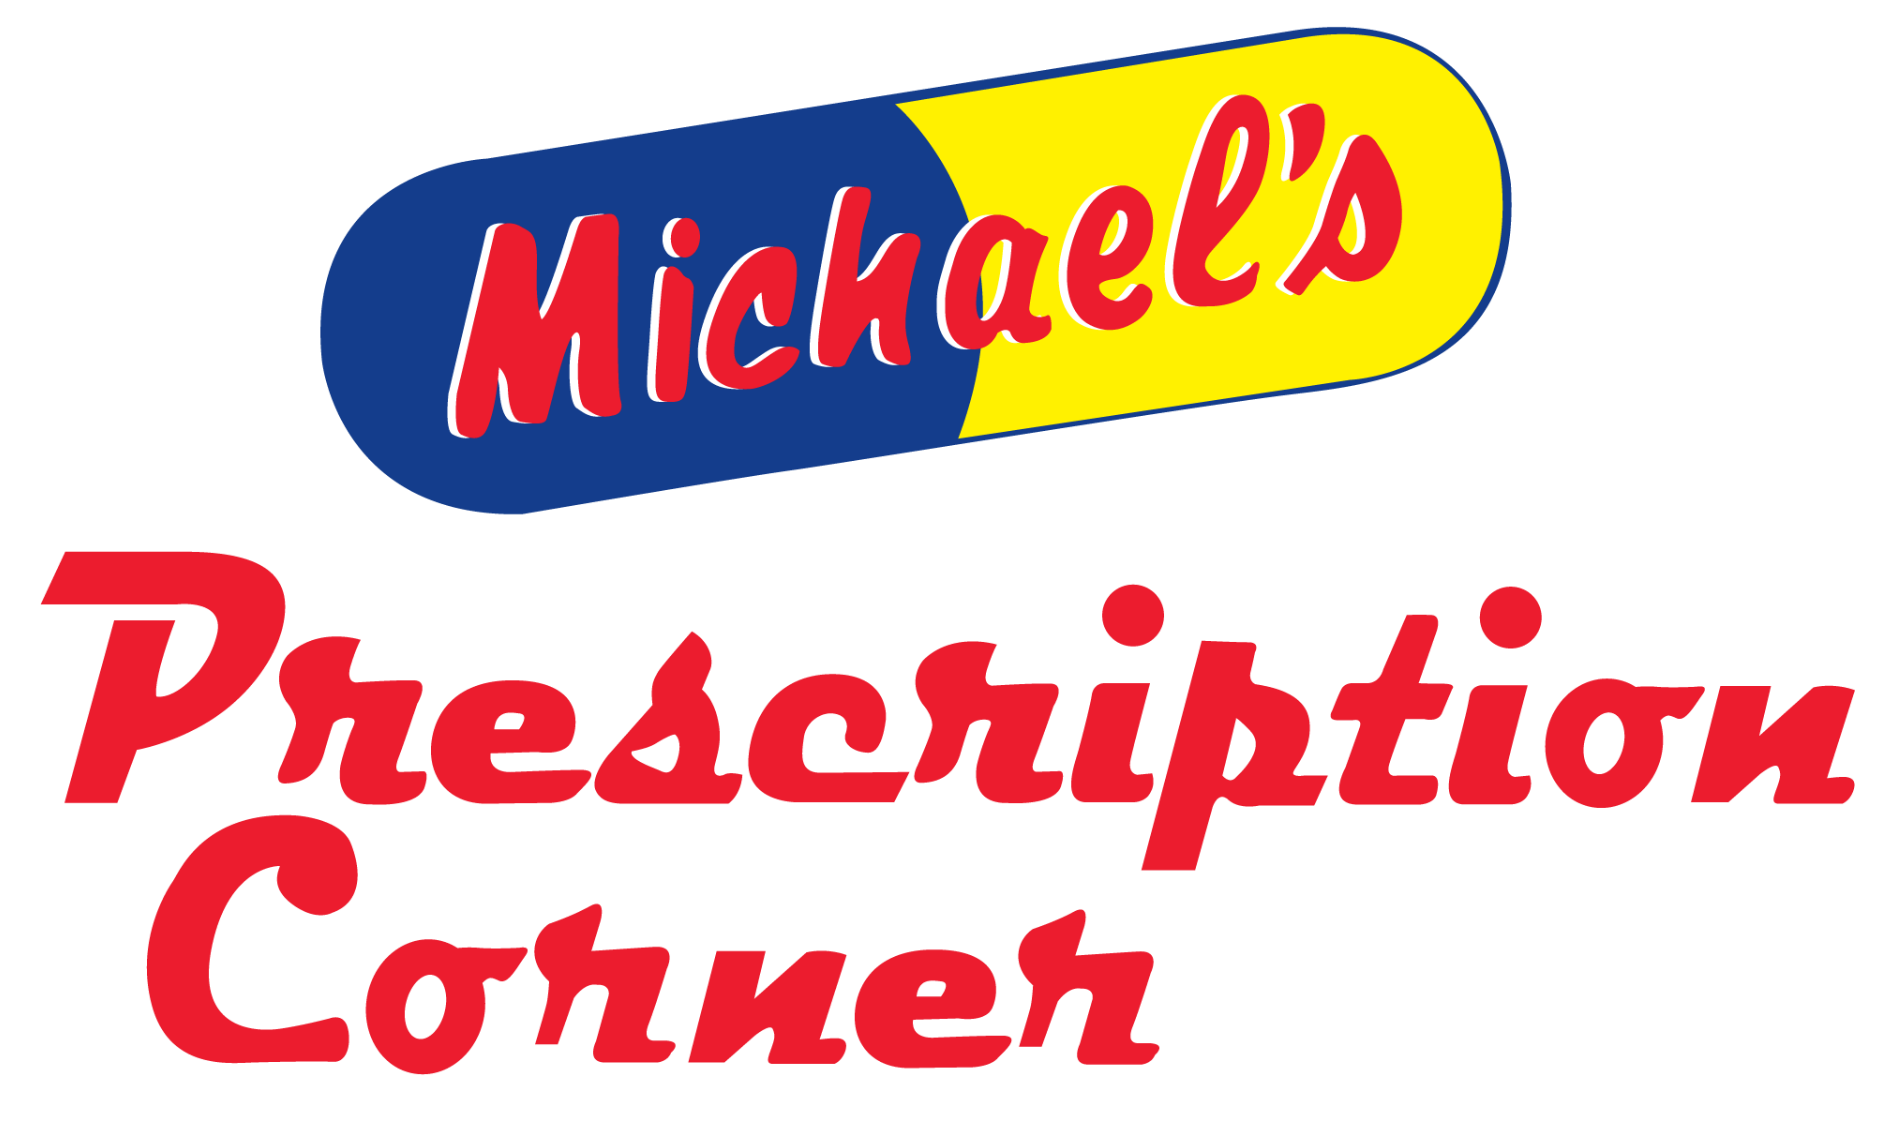 Michael's Prescription Corner